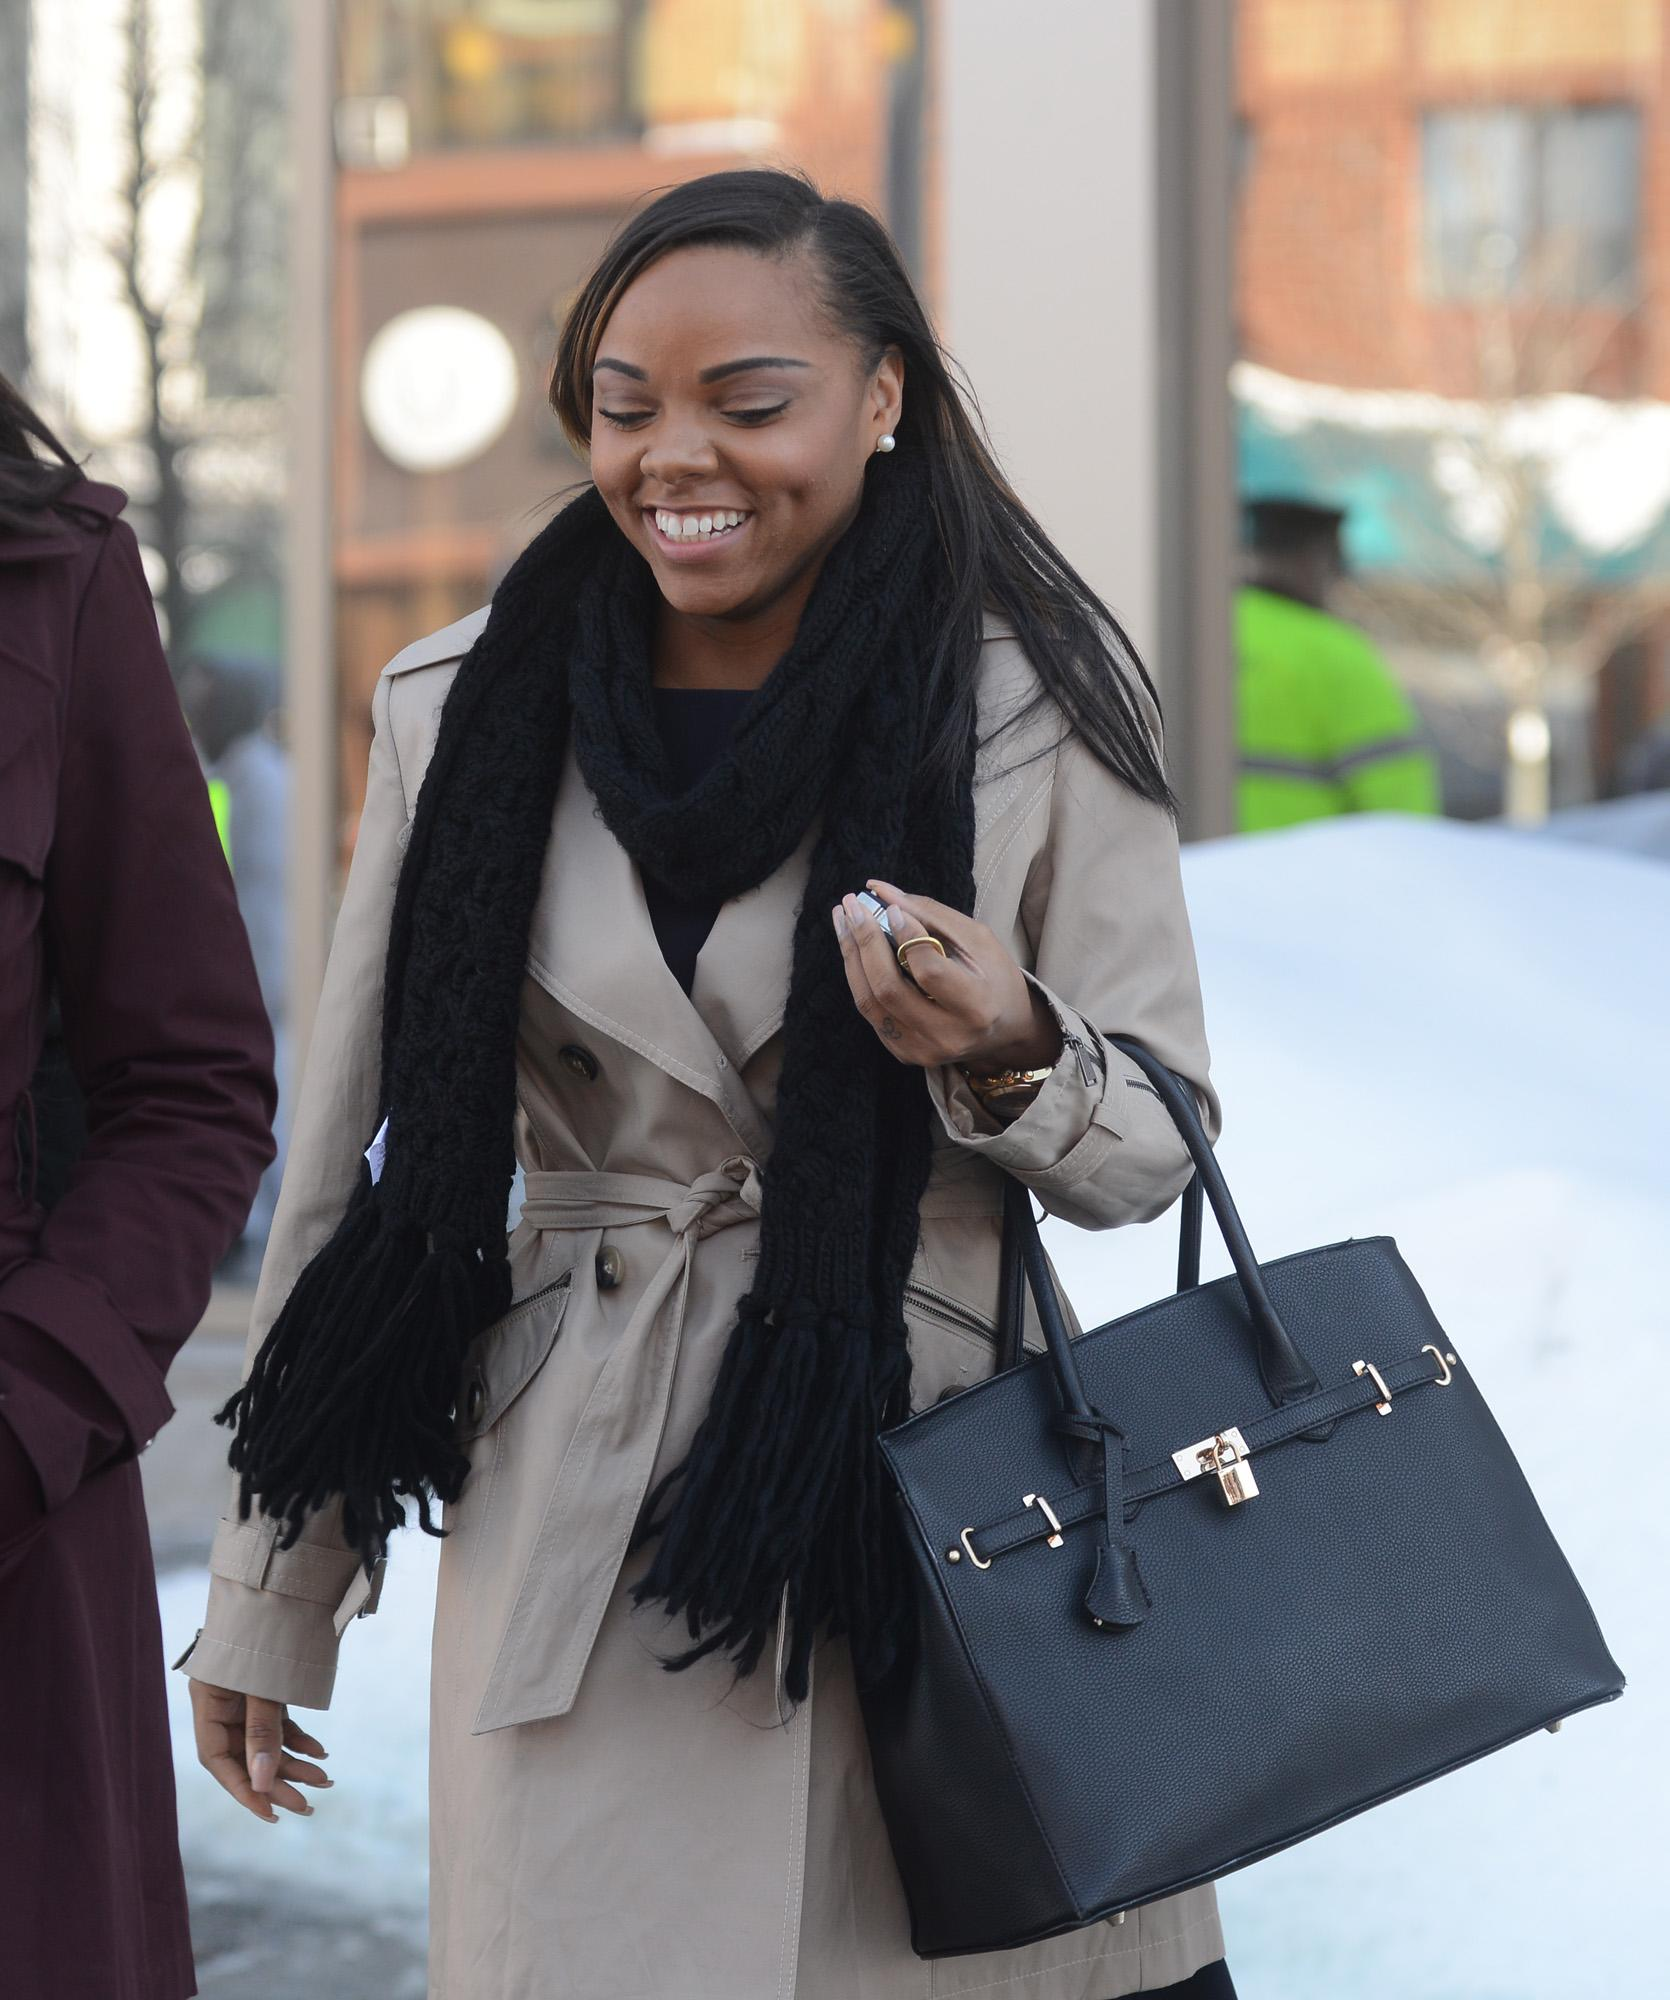 Meet Shayanna Jenkins, the woman who could decide Aaron Hernandez's fate